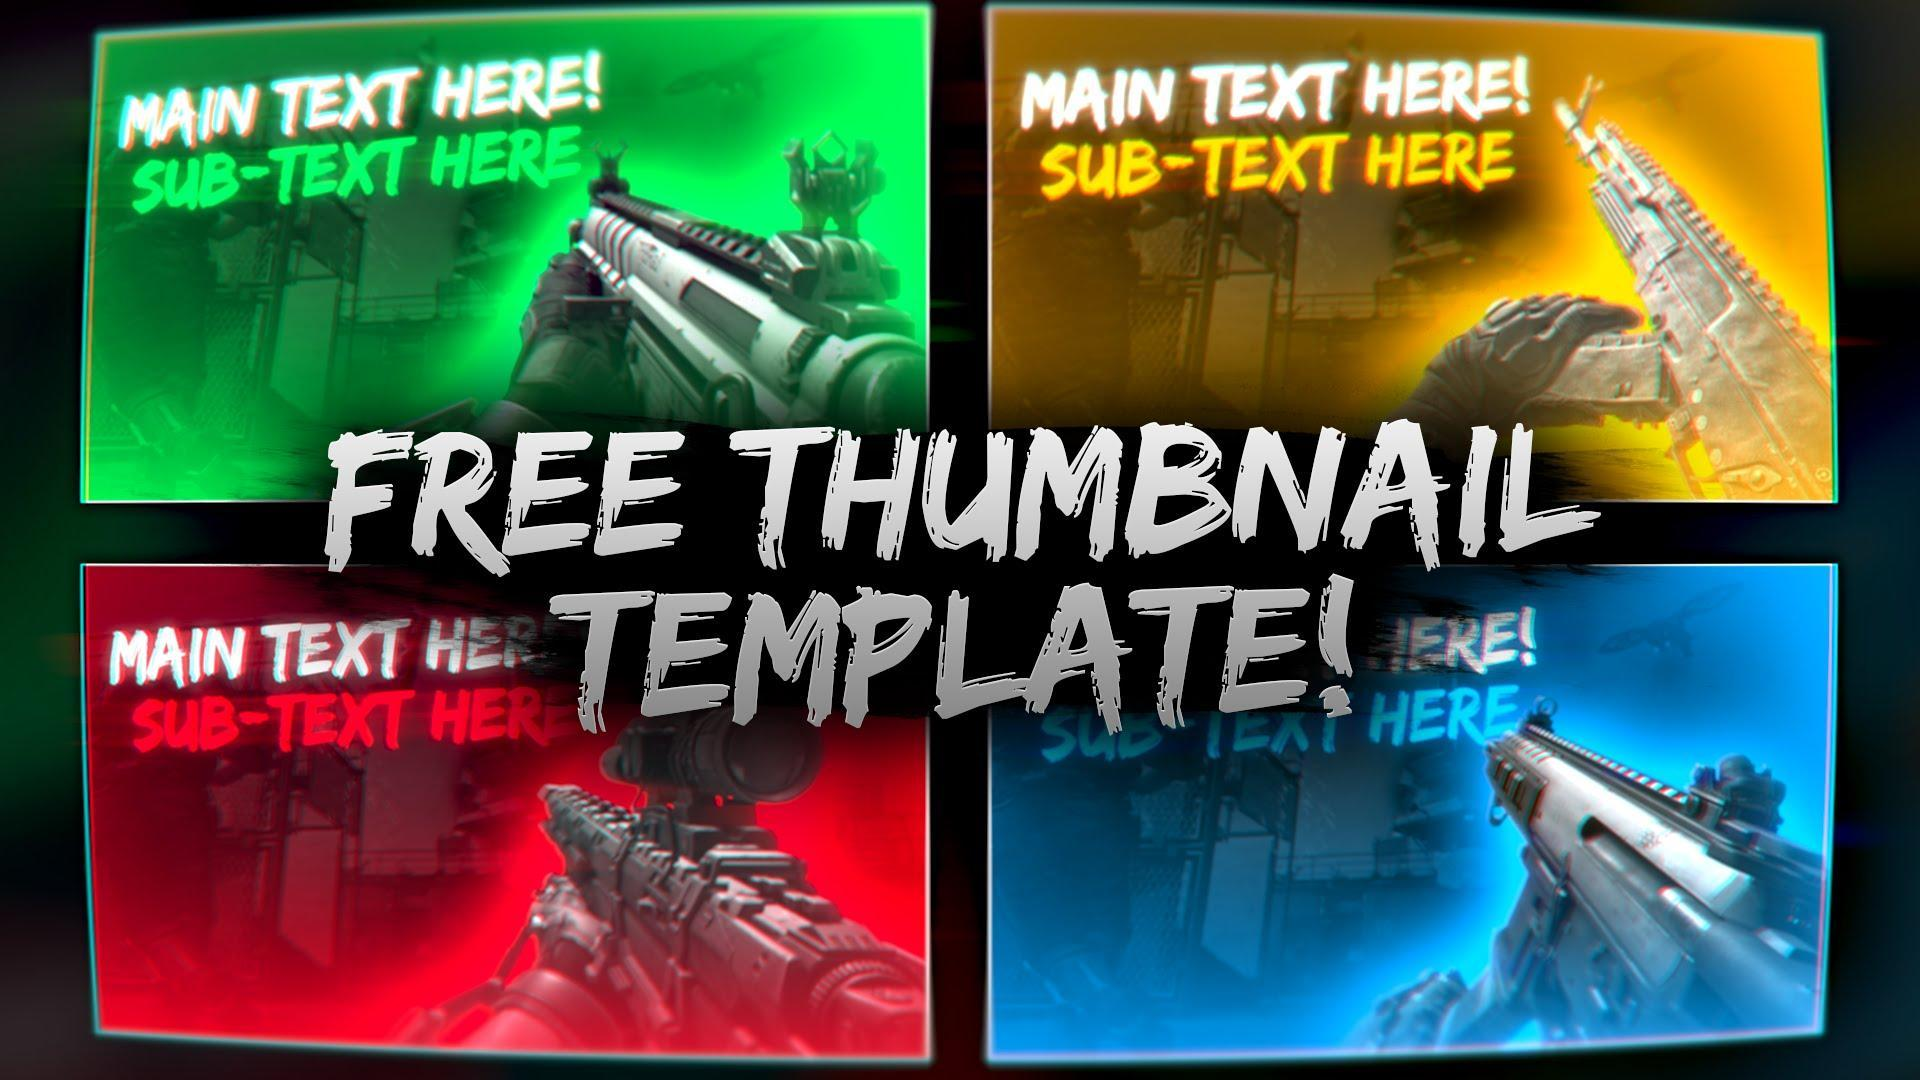 Thumbnail Maker For Android Apk Download